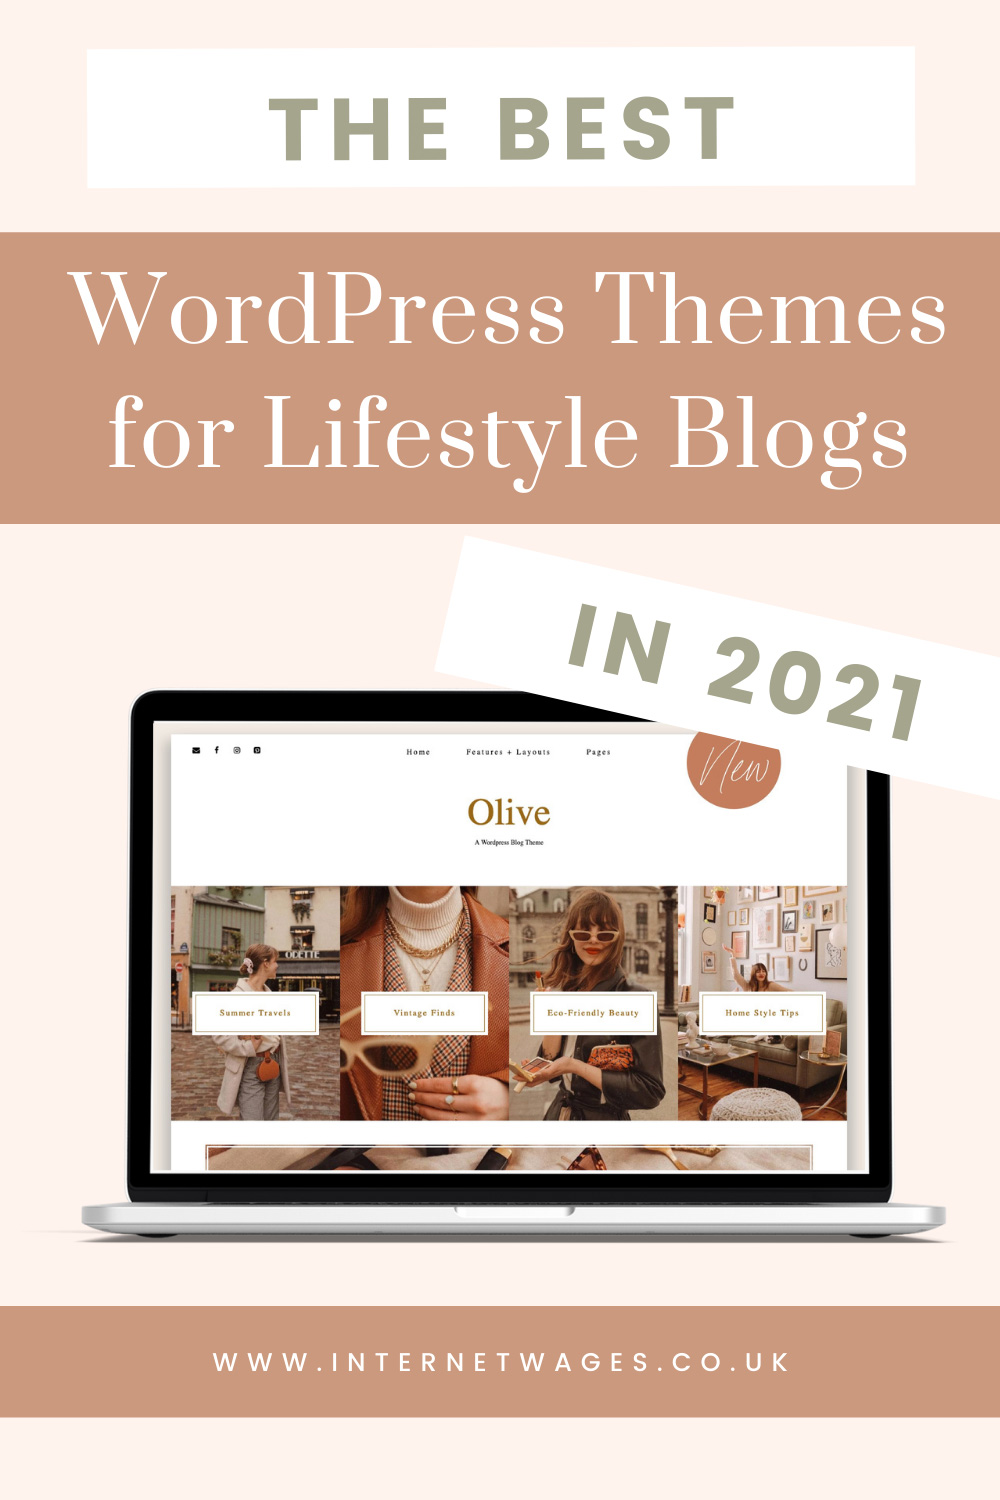 The Best WordPress Themes for Lifestyle Bloggers in 2021.